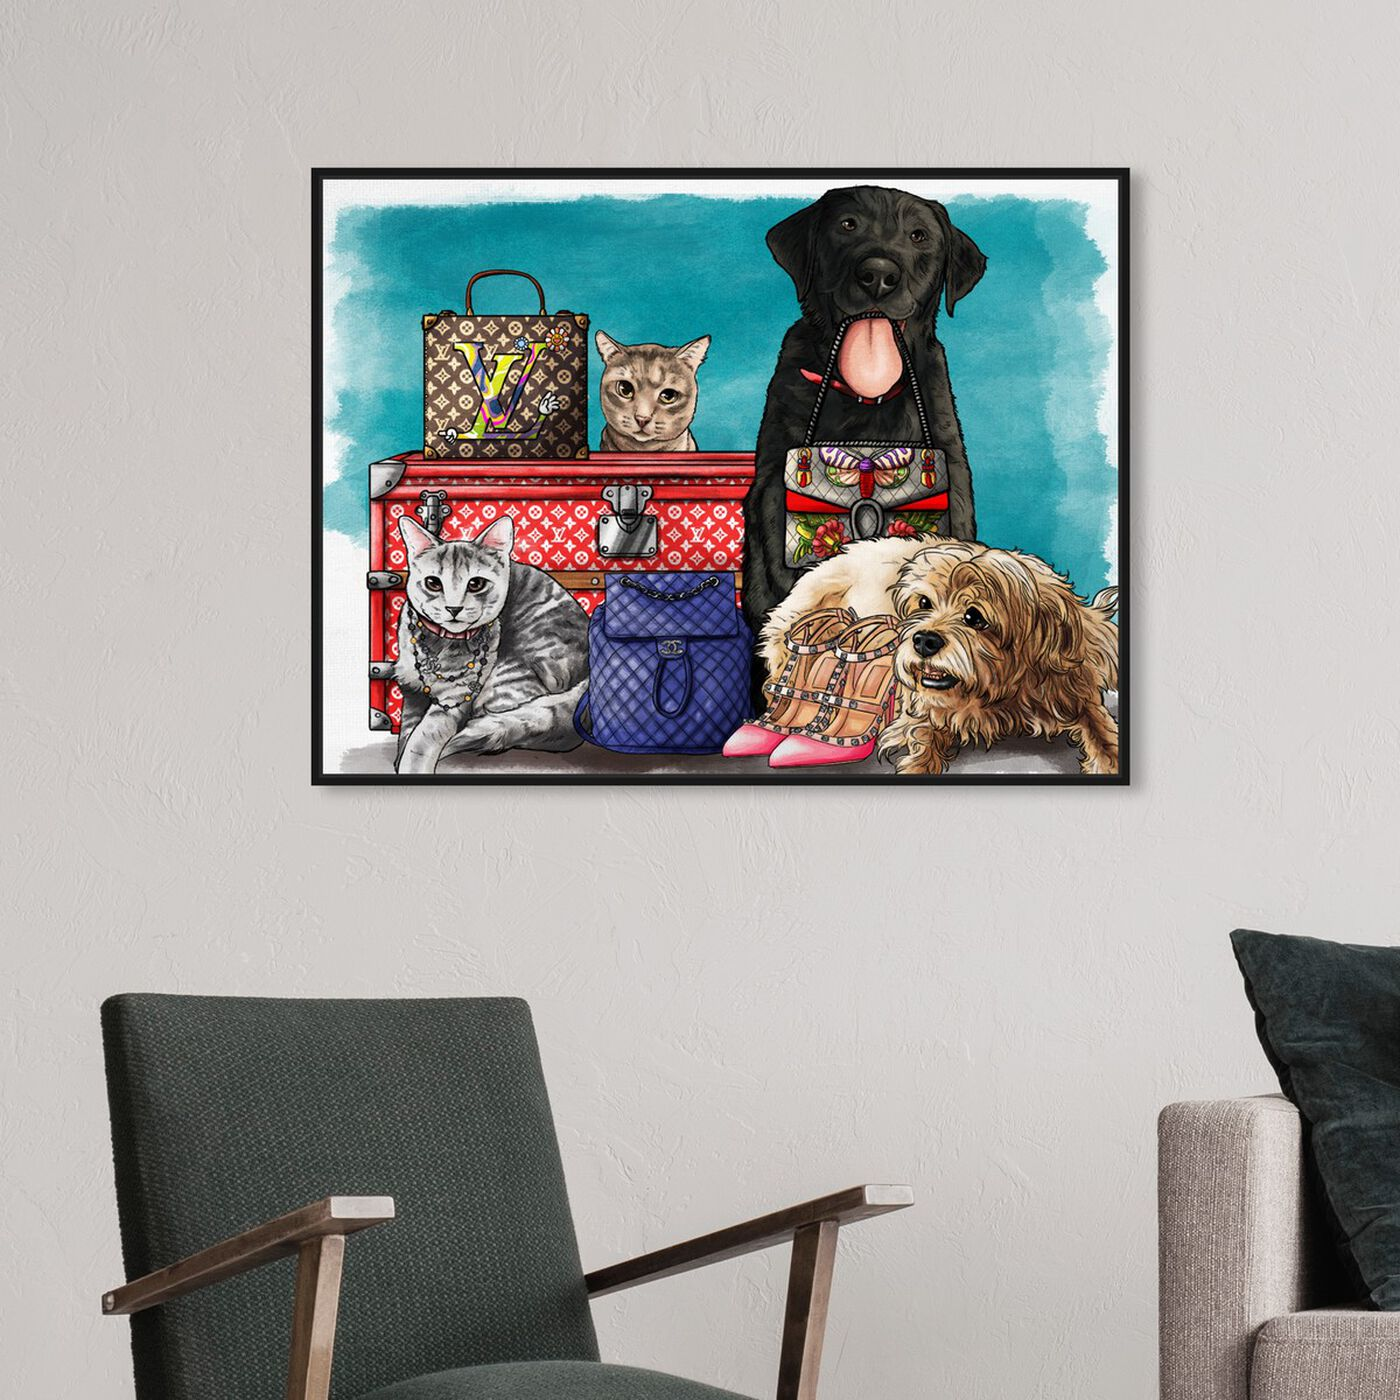 Hanging view of Fashionable Comrades featuring fashion and glam and travel essentials art.